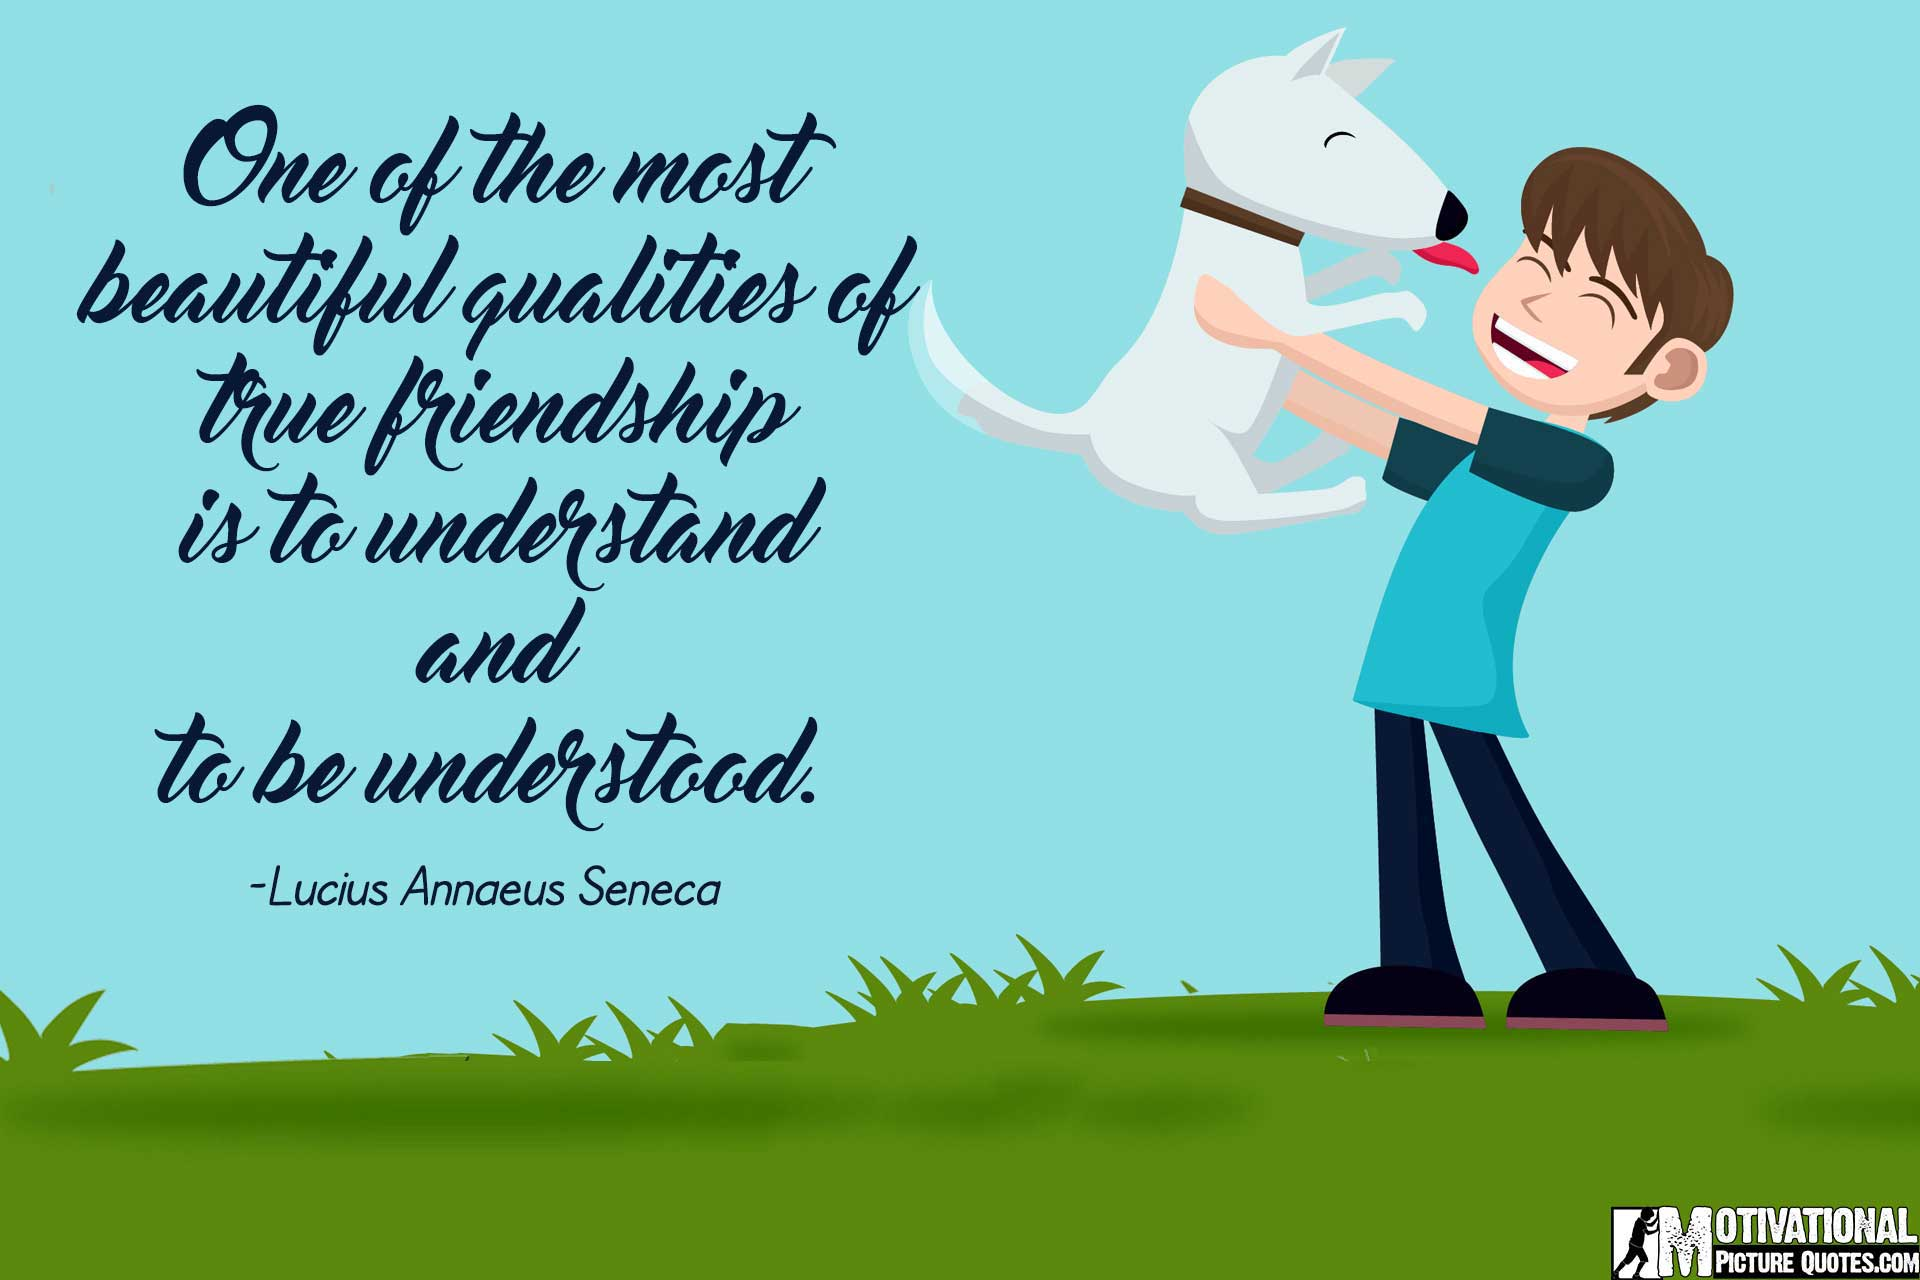 Nice Quotes About Friendship 25 Inspirational Friendship Quotes Images  Free Download